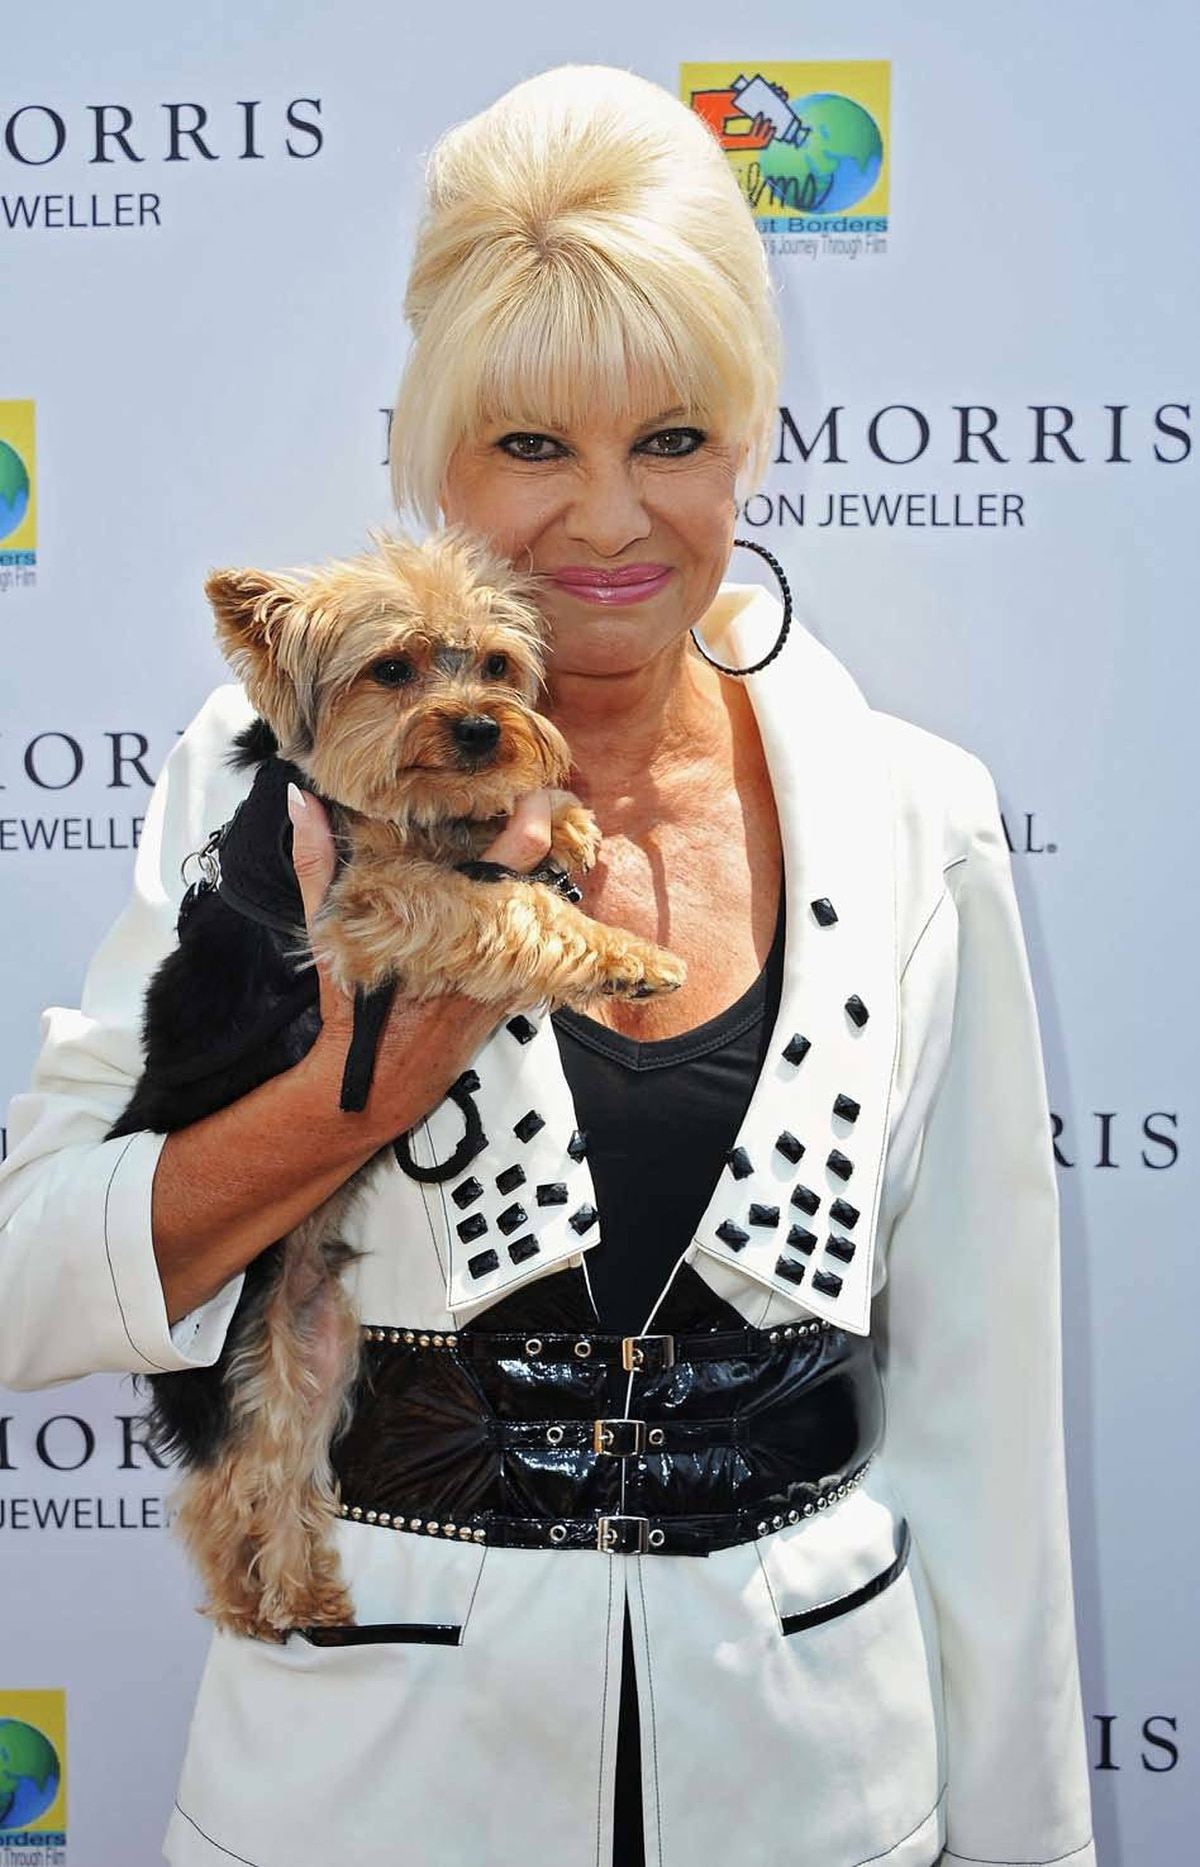 Ivana Trump does not attend amfAR's Cinema Against AIDS Gala at the Cannes Film Festival on Thursday. But she does attend a lunch hosted by a jeweller.